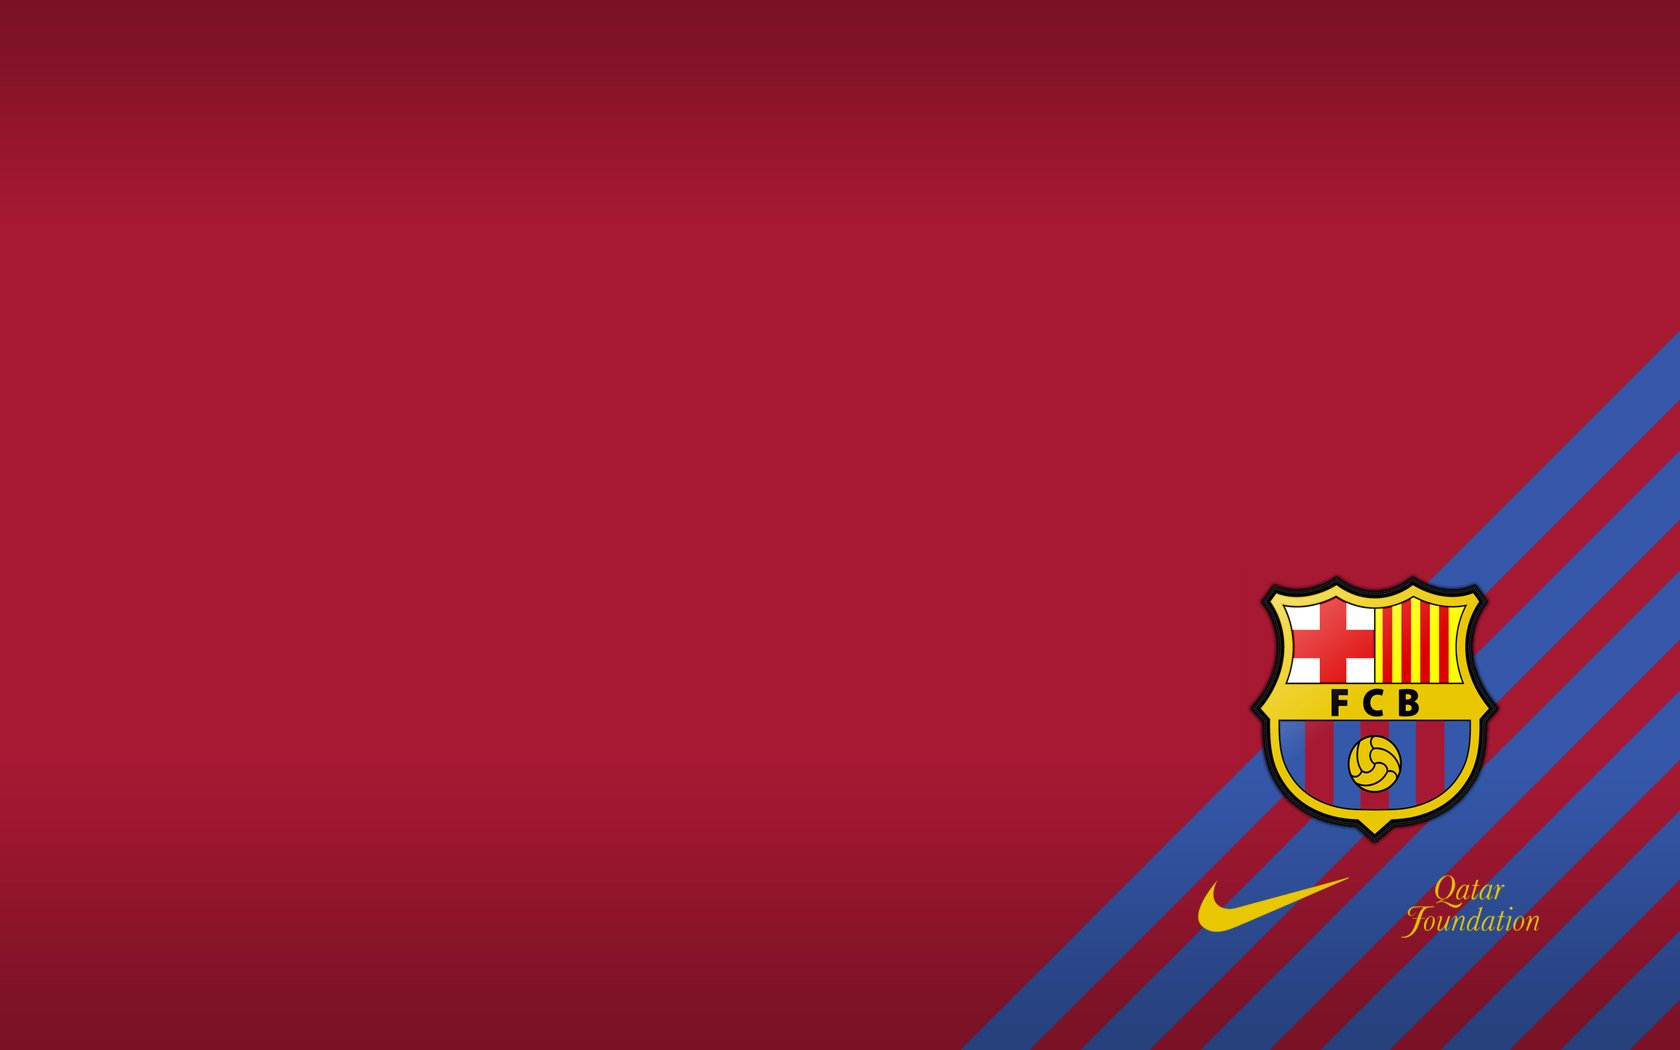 Free Download Fc Barcelona Wallpaper By Vkkk Dyatz 1680x1050 Pixel Football Hd 1680x1050 For Your Desktop Mobile Tablet Explore 49 Barcelona Desktop Wallpaper Fc Barcelona Wallpaper 2015 Fc Barcelona